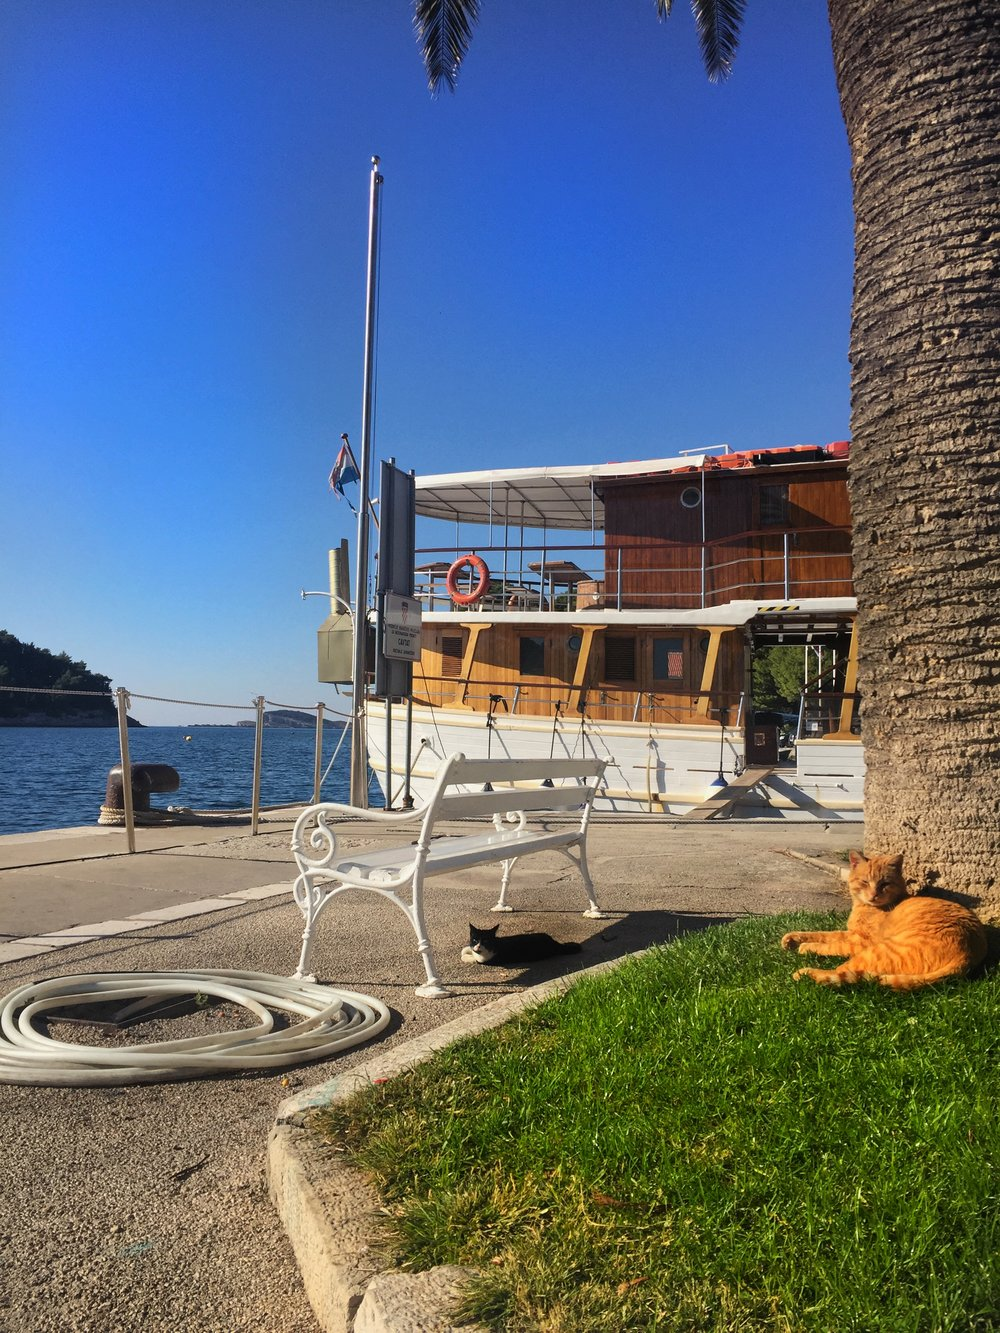 cats also rule Cavtat